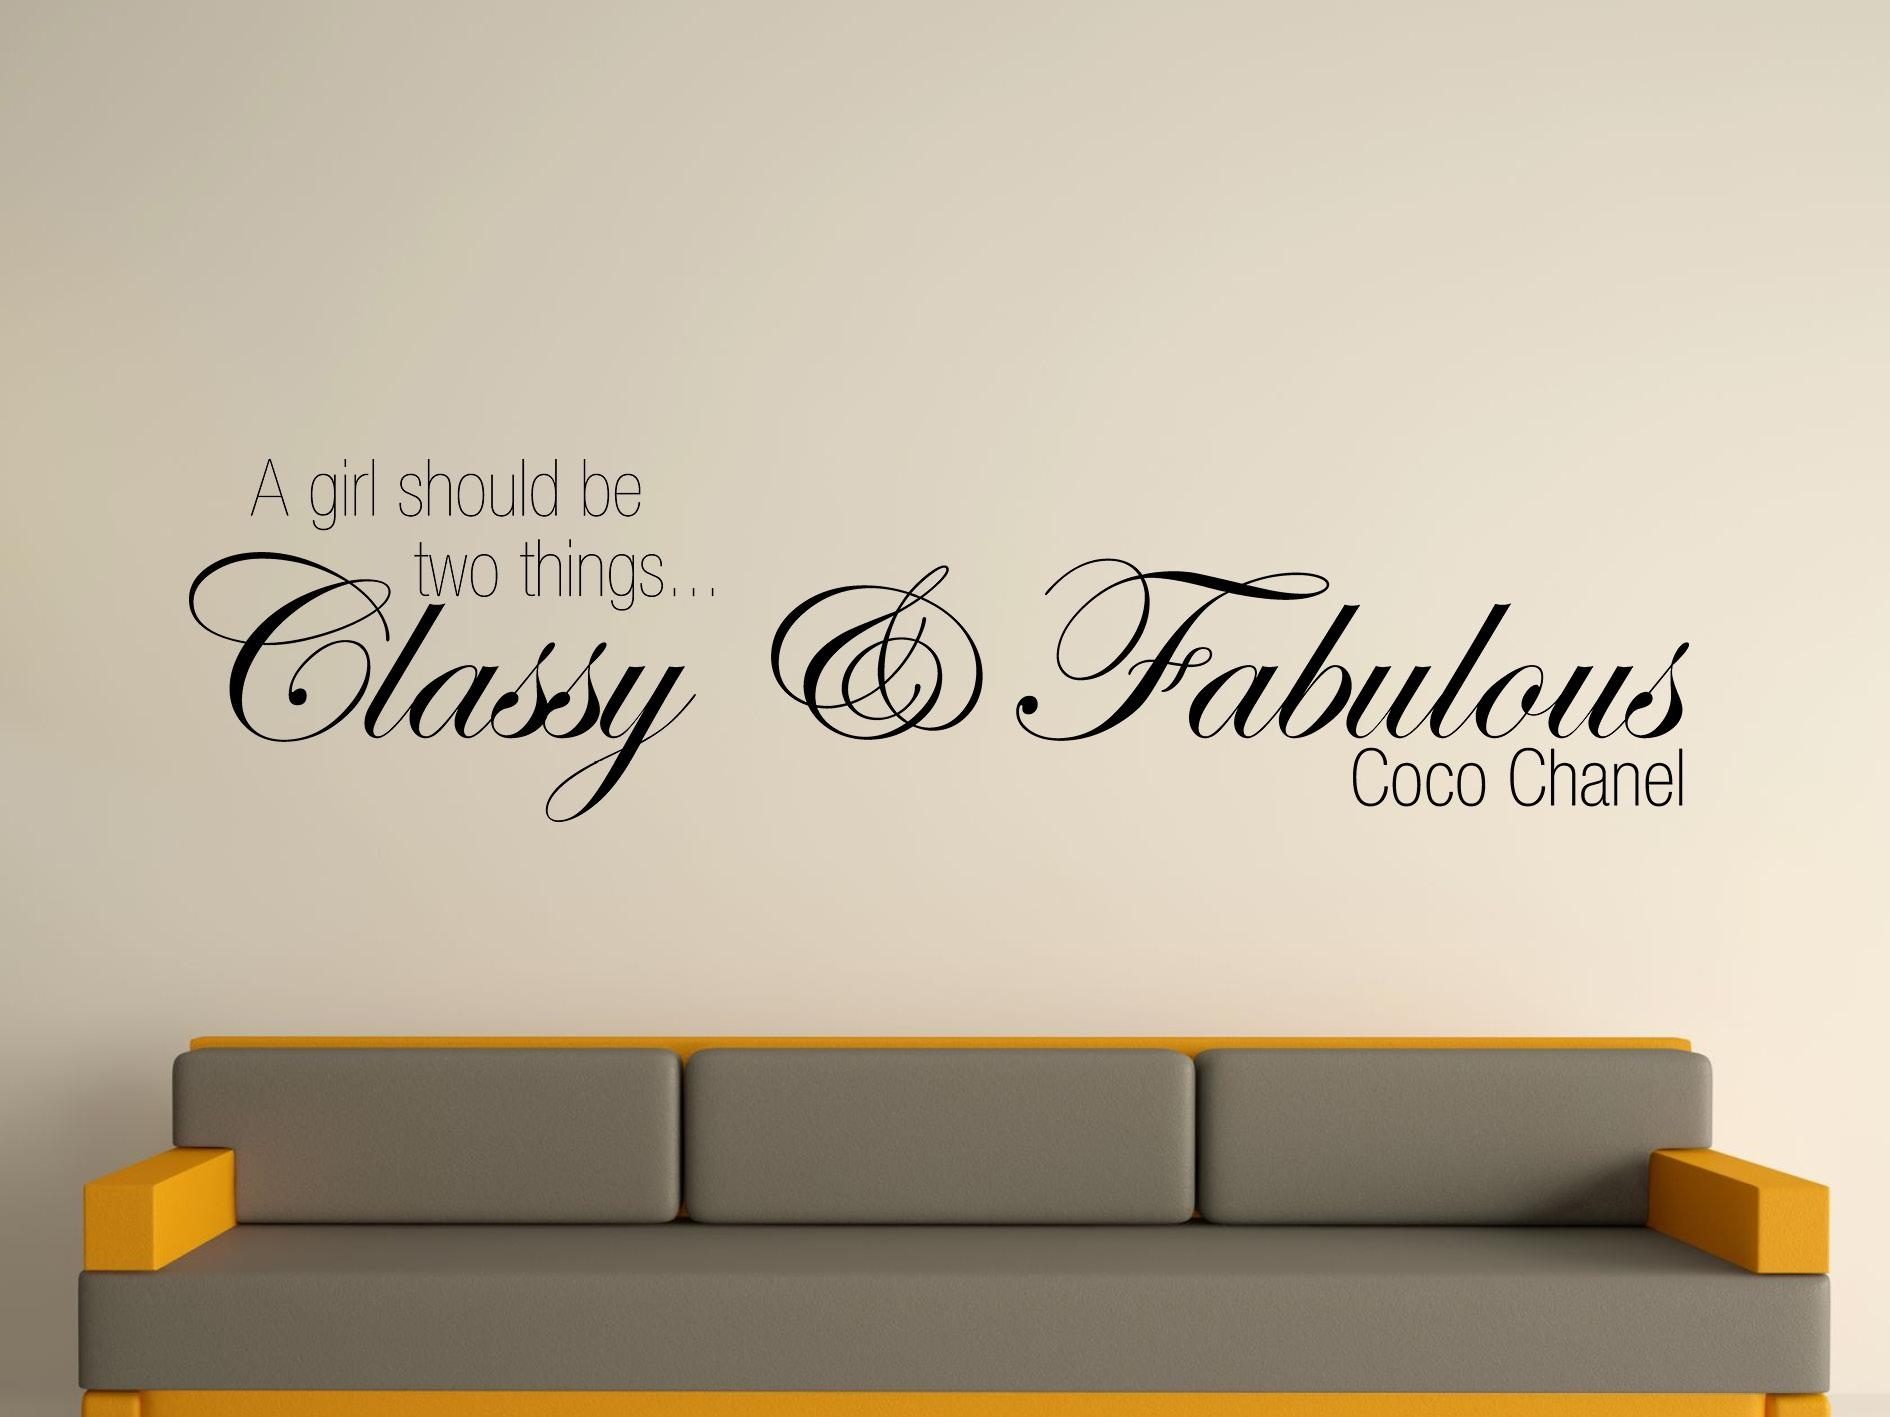 Coco Chanel Quotes Wall Decals Quotesgram Home Furniture Diy Decor Within Coco Chanel Wall Decals (Image 10 of 20)